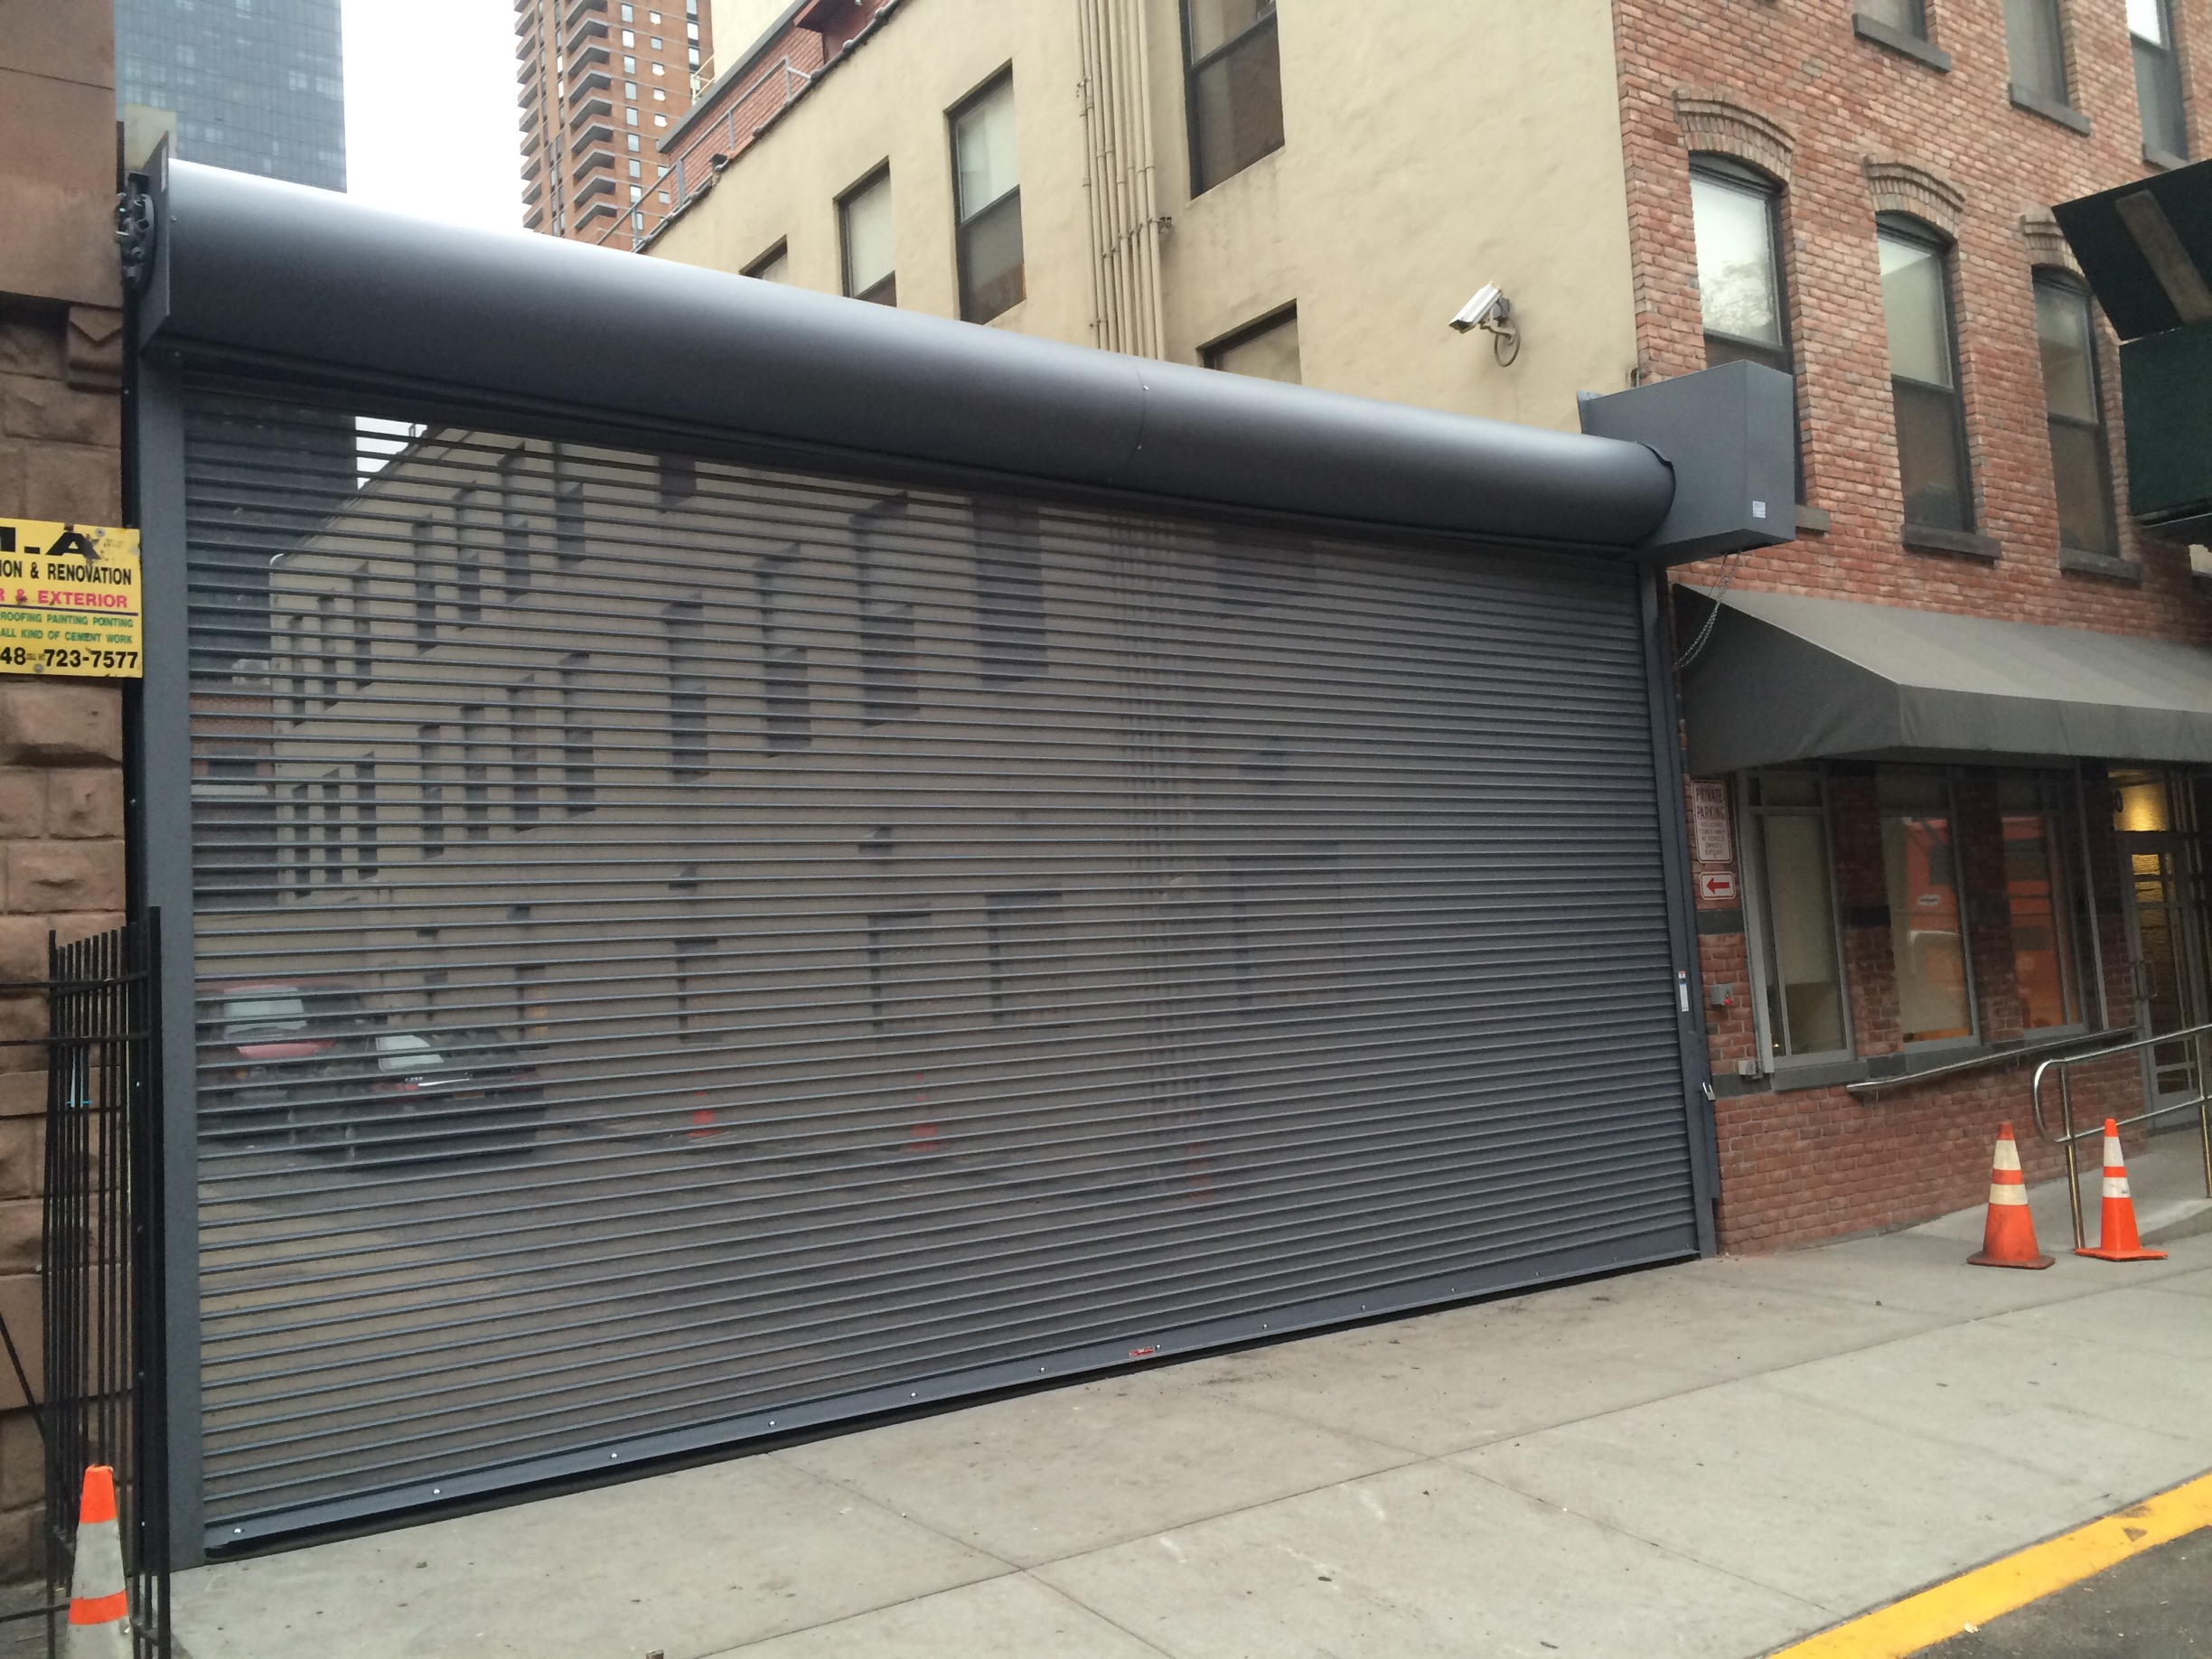 repair mesh perforated punched hole open air visibility rolling door shutter new york city new jersey & Finest Doorman Blog | Loading Dock New Jersey - New York ...